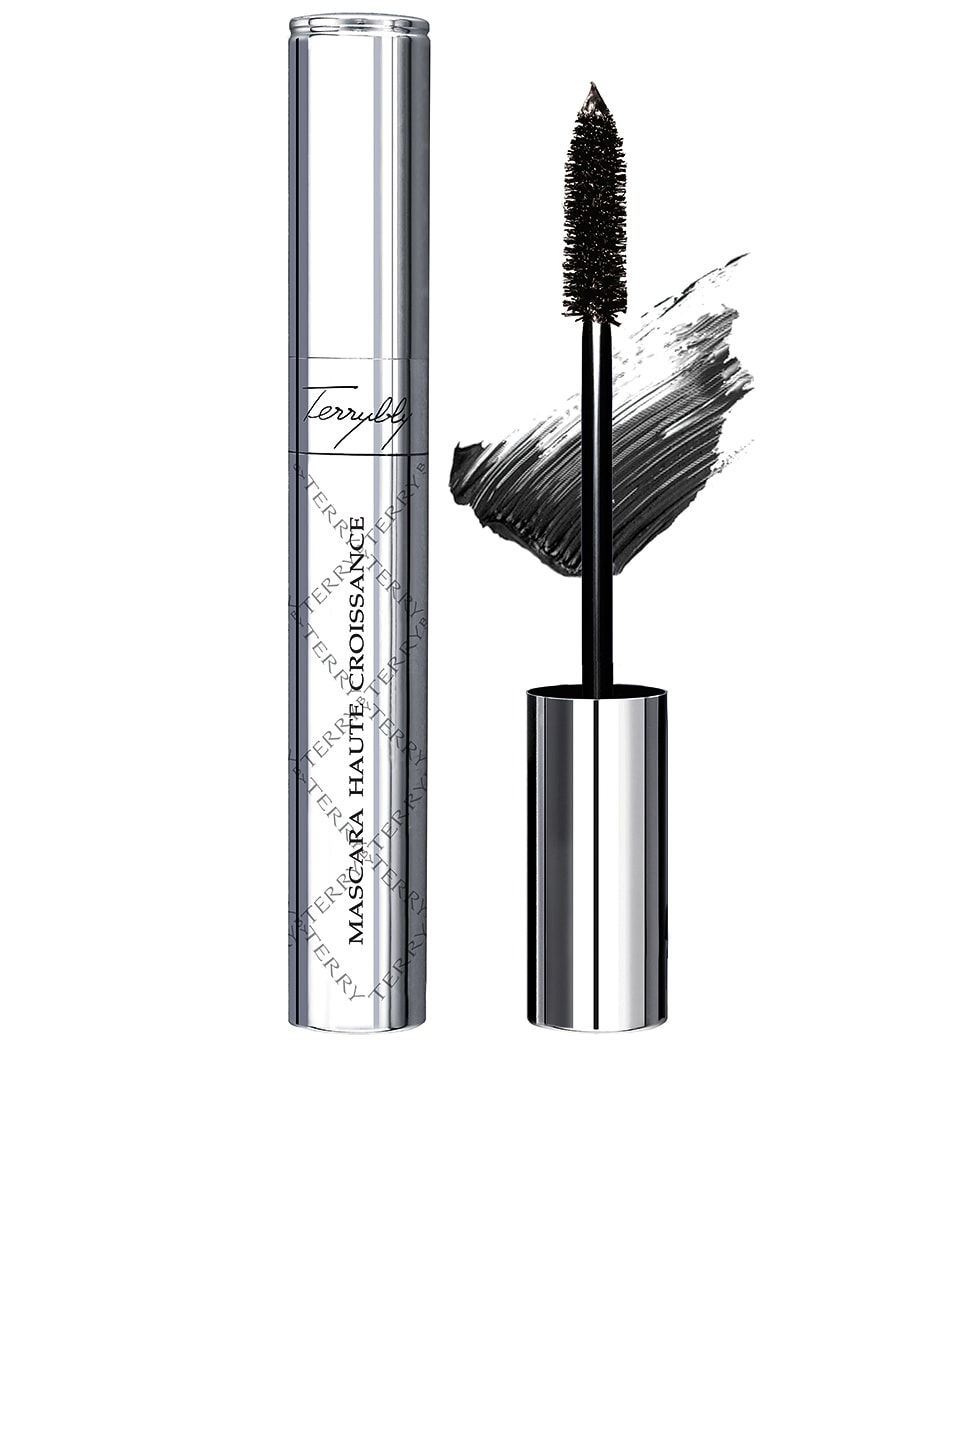 By Terry Terrybly Growth Booster Mascara en Black Parti-Pris